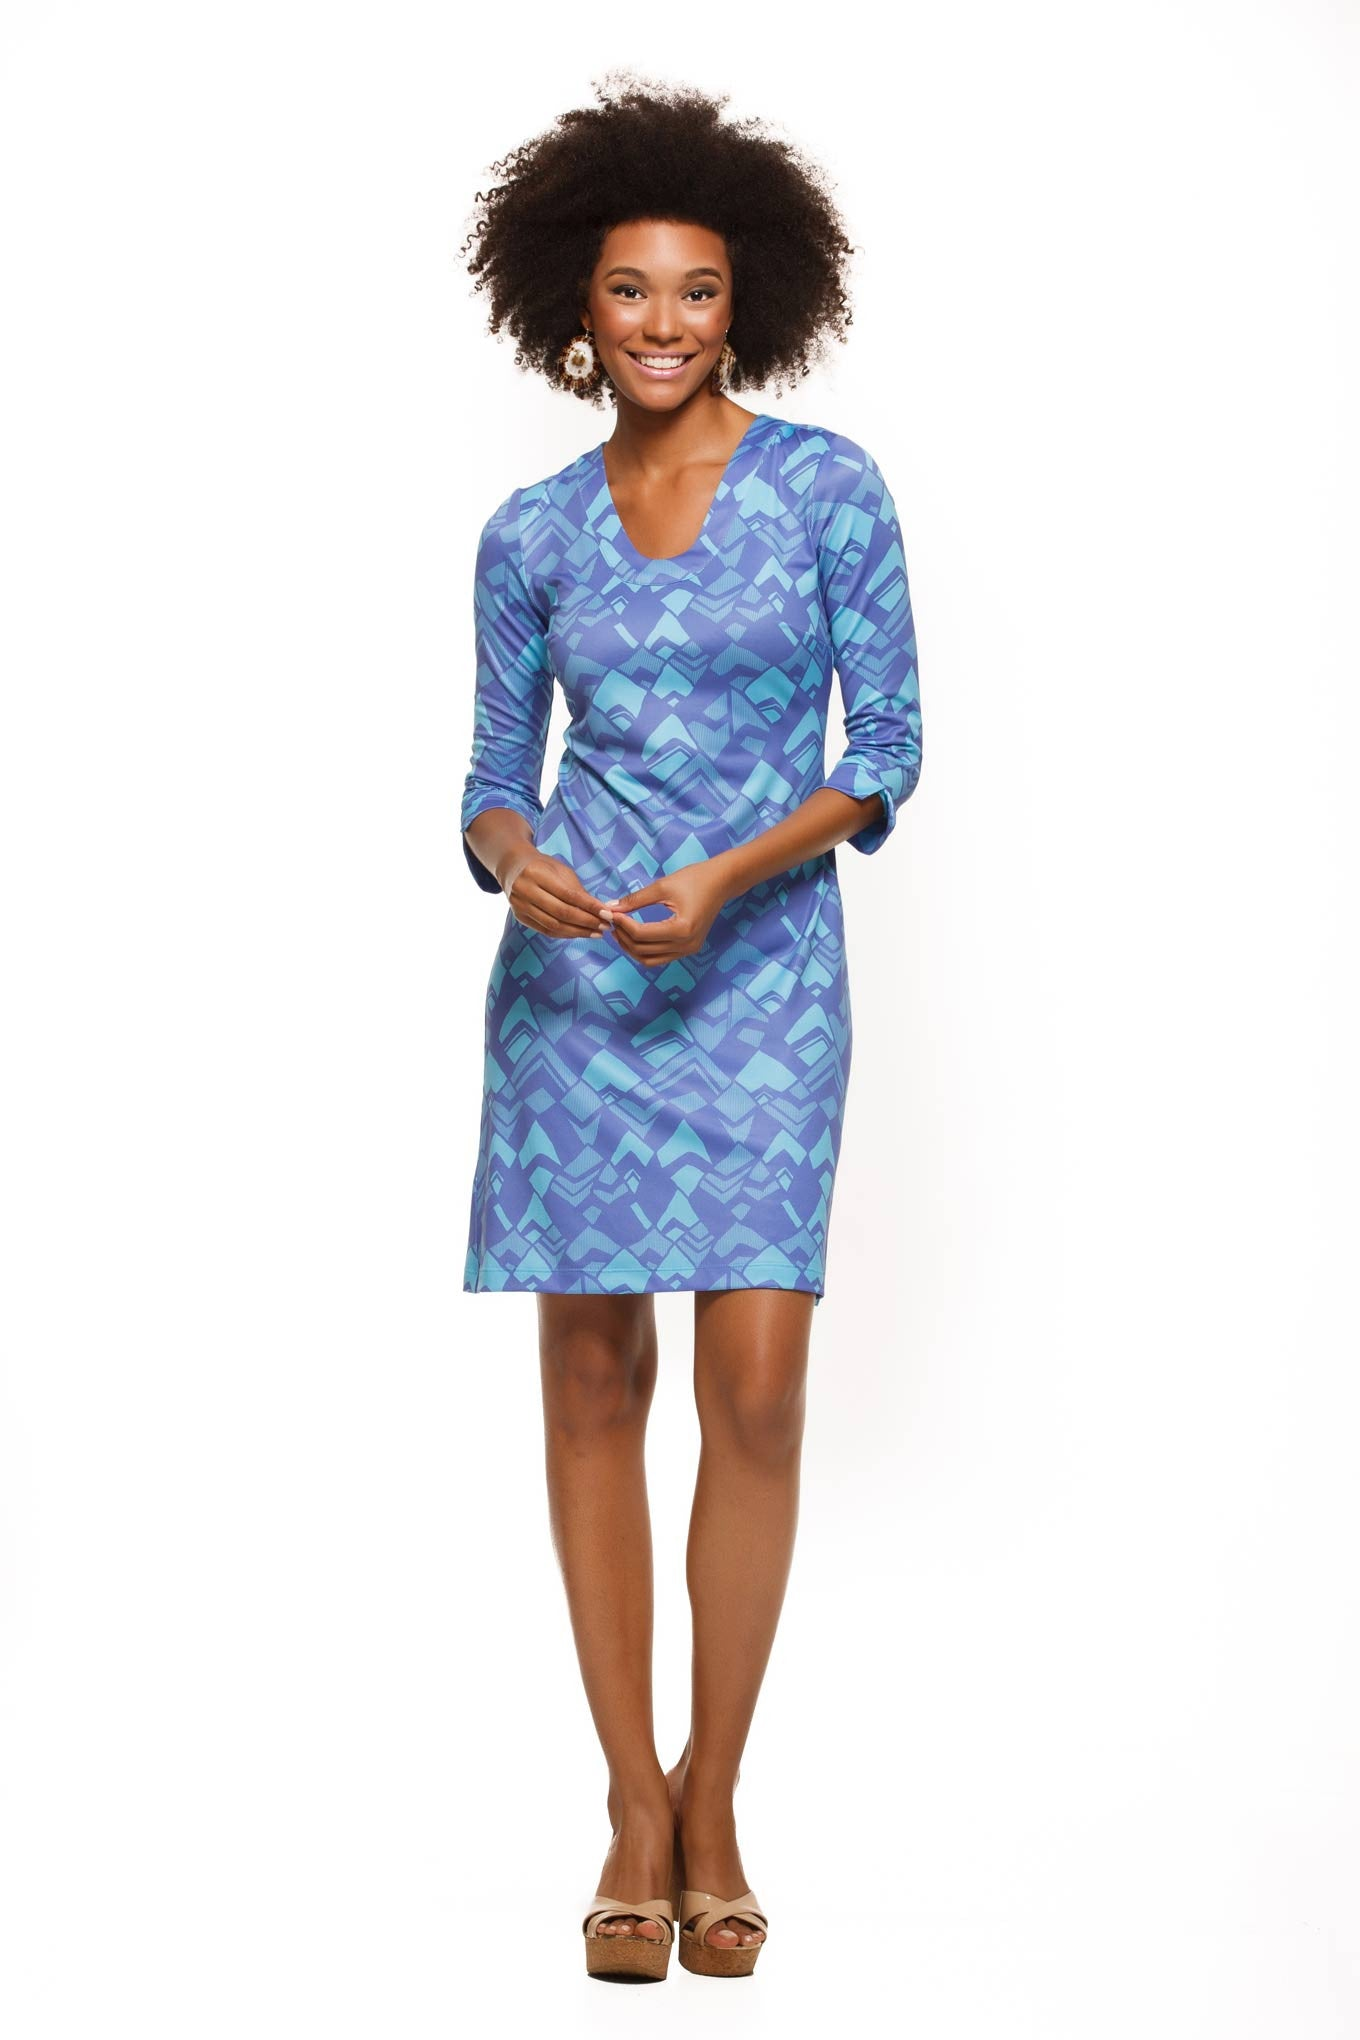 Julia-womens-three-quarter-sleeve-u-neck-dress-in-purple-and-blue-geo-print-front-view-by-Rulon-Reed